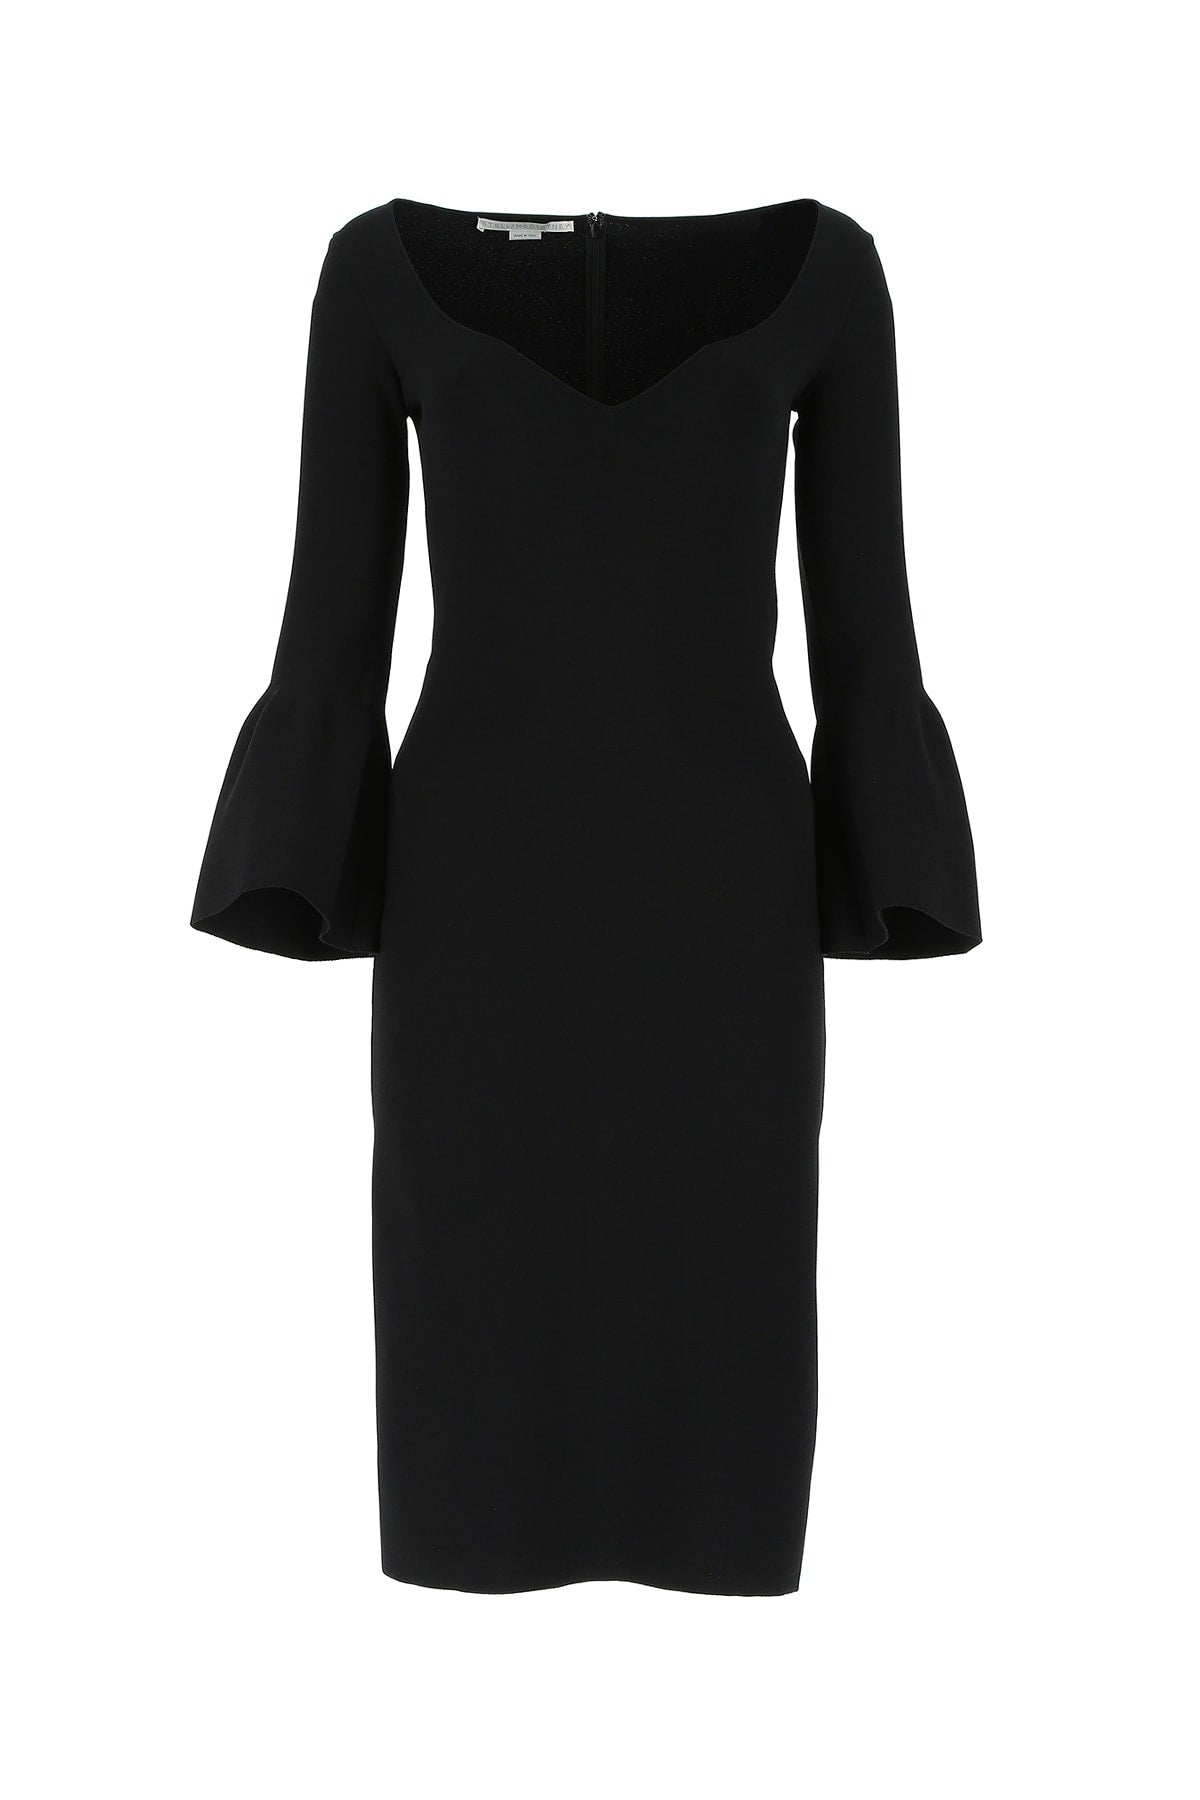 Stella Mccartney Midi dresses STELLA MCCARTNEY FLARED SLEEVES MIDI DRESS